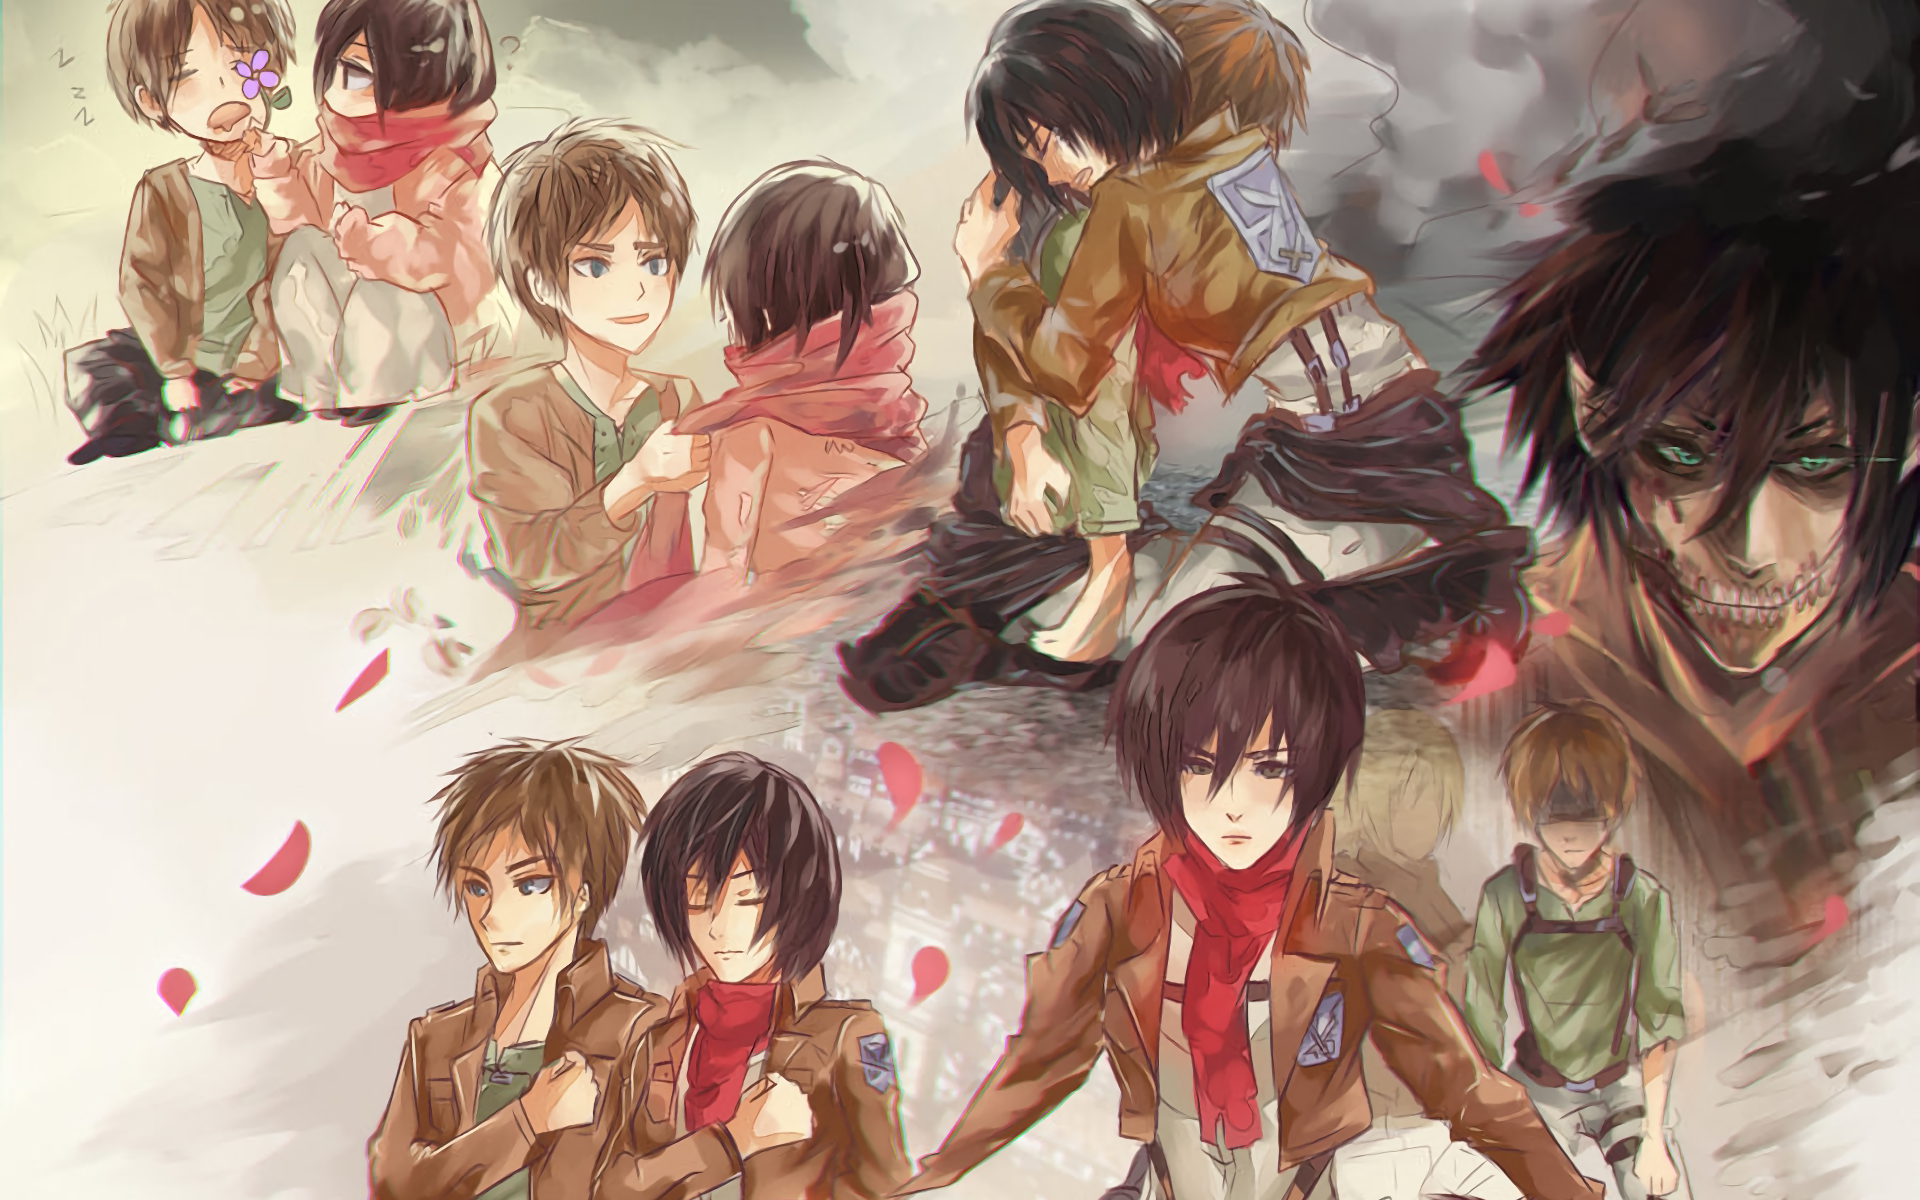 Anime Attack On Titan Shingeki No Kyojin Mikasa Ackerman Eren Yeager Wallpaper Attack On Titan Titans Background Images